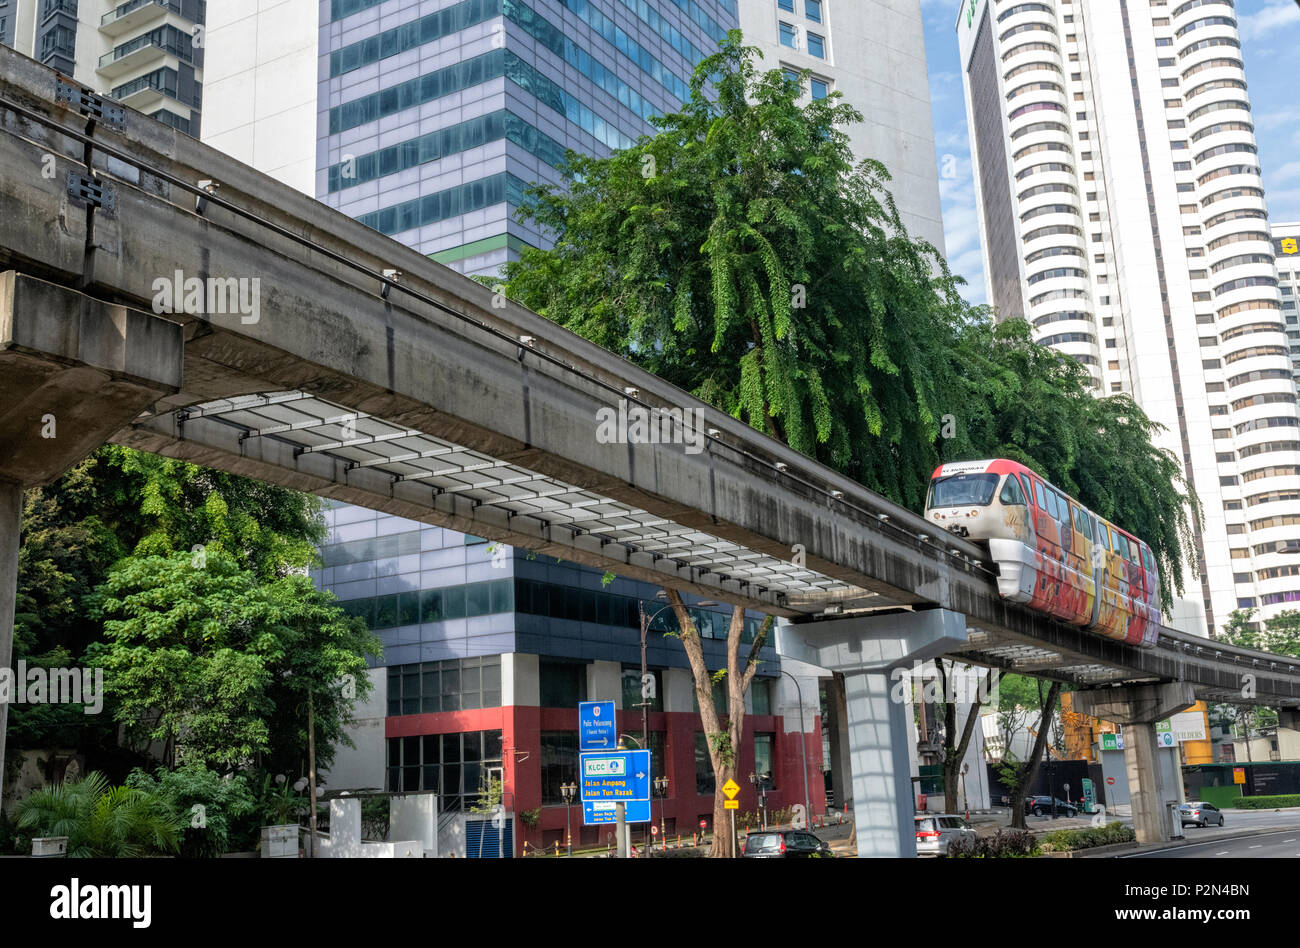 A Monorail Car passes above a main road in the centre of Kuala Lumpur, Malaysia - Stock Image